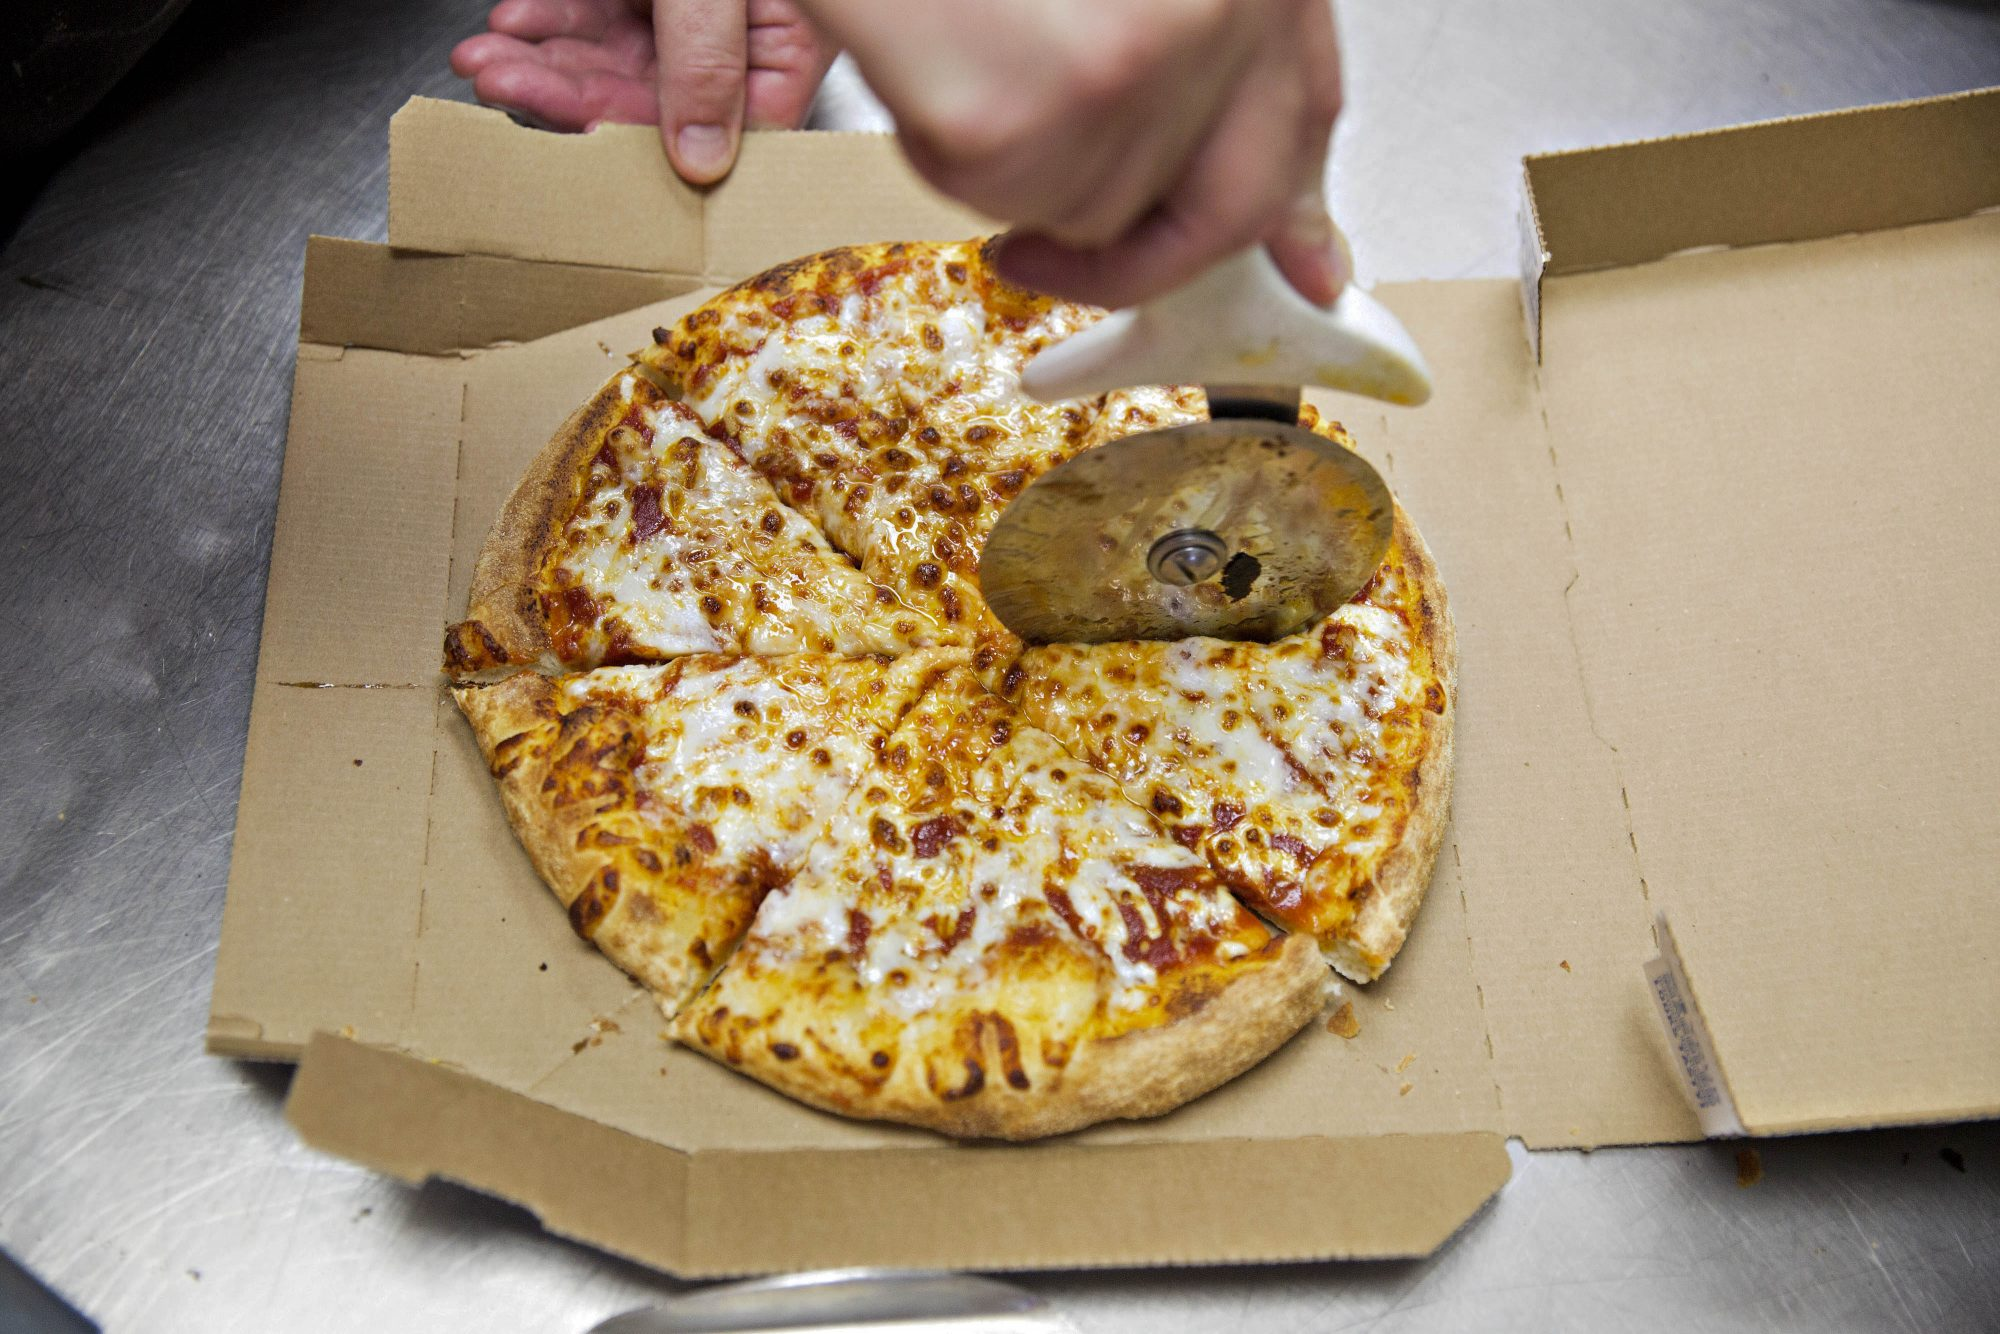 A pizza is sliced at a Domino's Pizza restaurant in Rantoul, Illinois, U.S., on Thursday, Oct. 8, 2015.